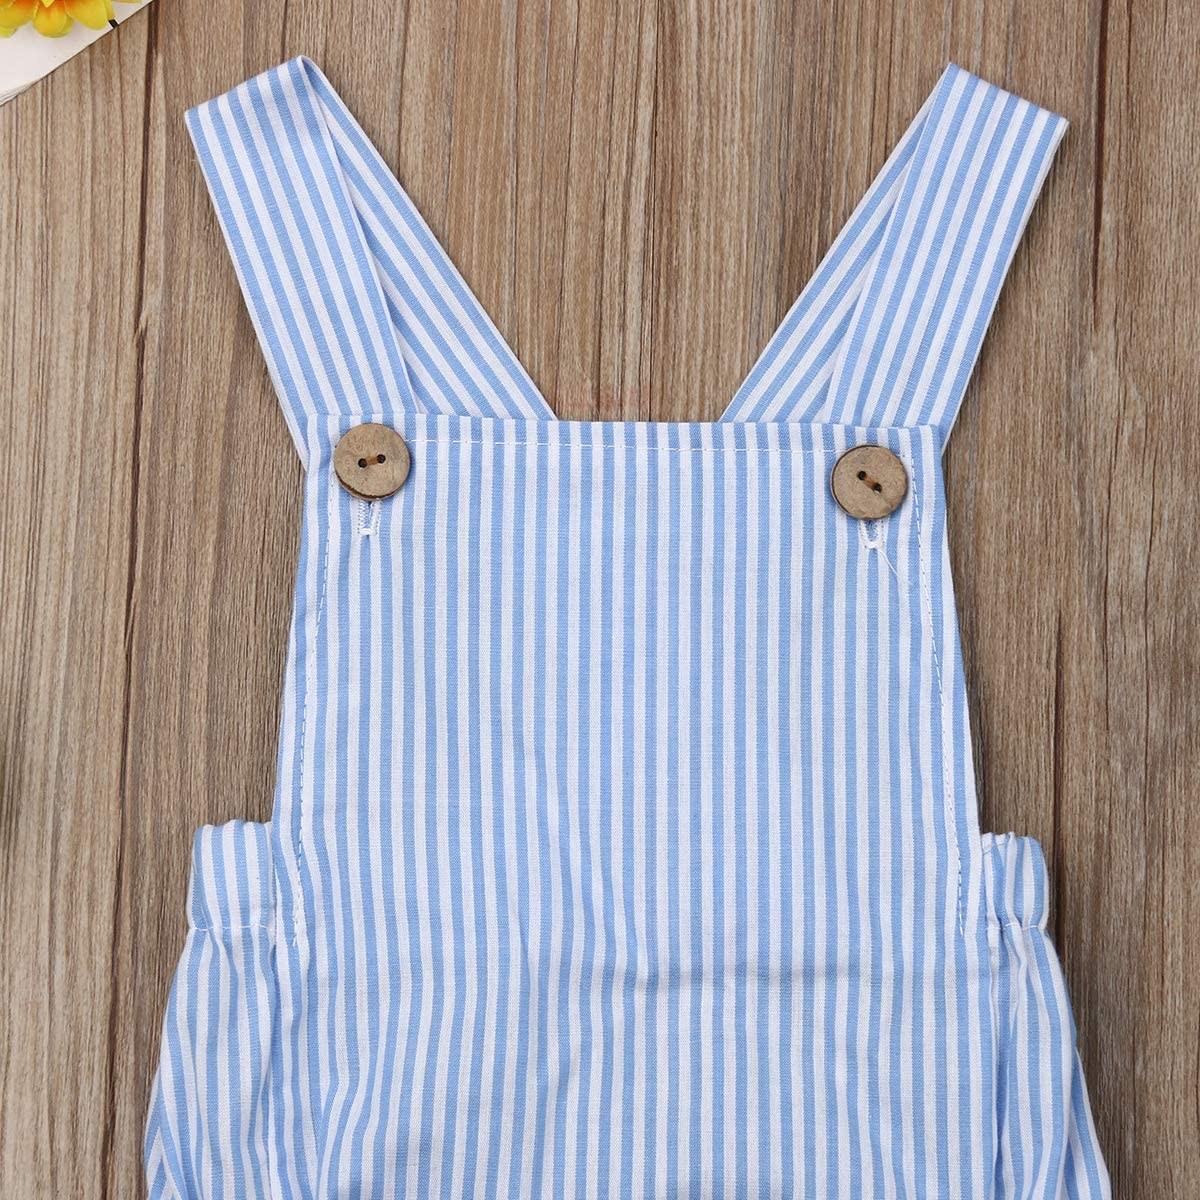 Geagodelia Newborn Infant Twin Baby Girl Clothes Summer Outfit Sleeveless Cotton Romper Striped Bodysuit Jumpsuit